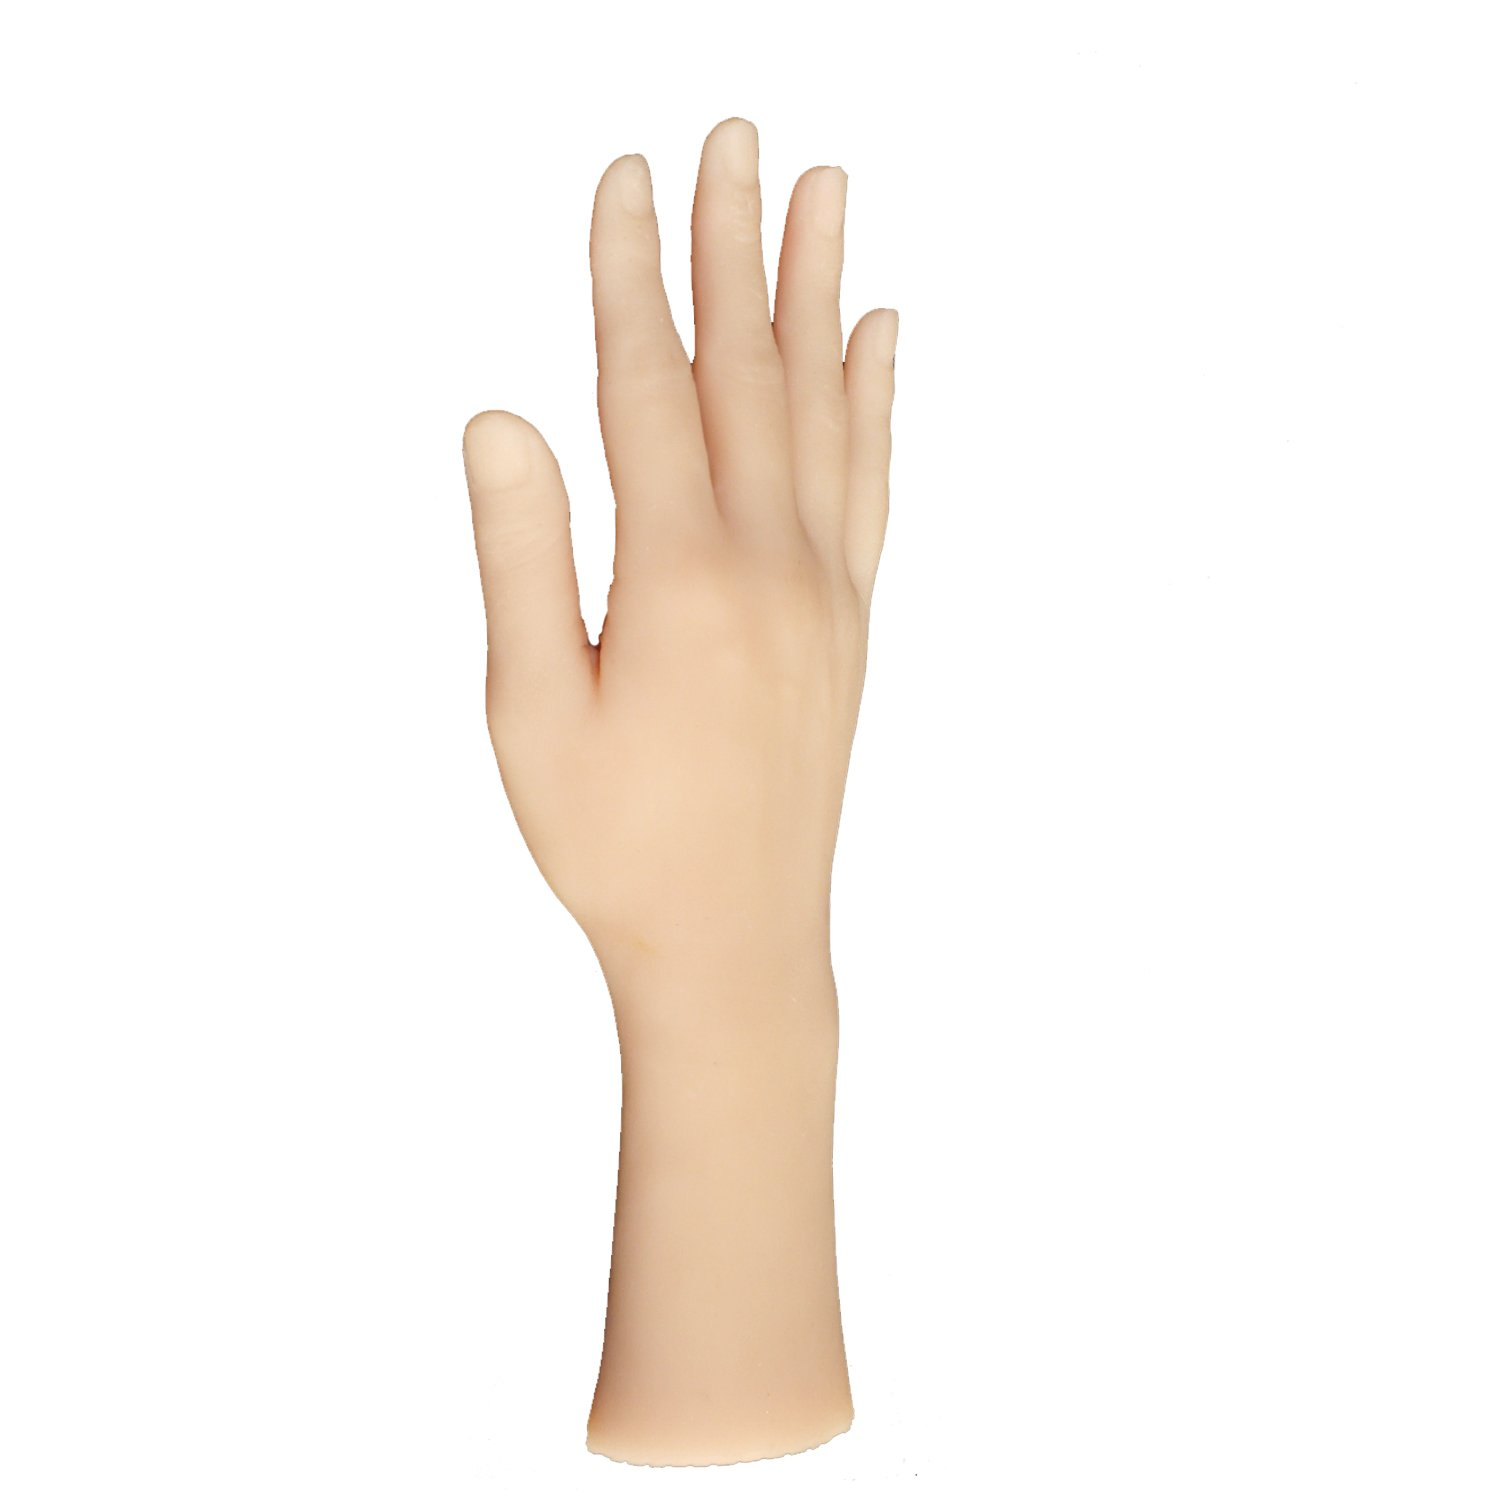 Silicone Life size Female hand Mannequin Dummy arbitrarily-bent/posed/soft Jewelery Ring Glove Bracelet Display Fetish woman hand (Right hand) ZKF